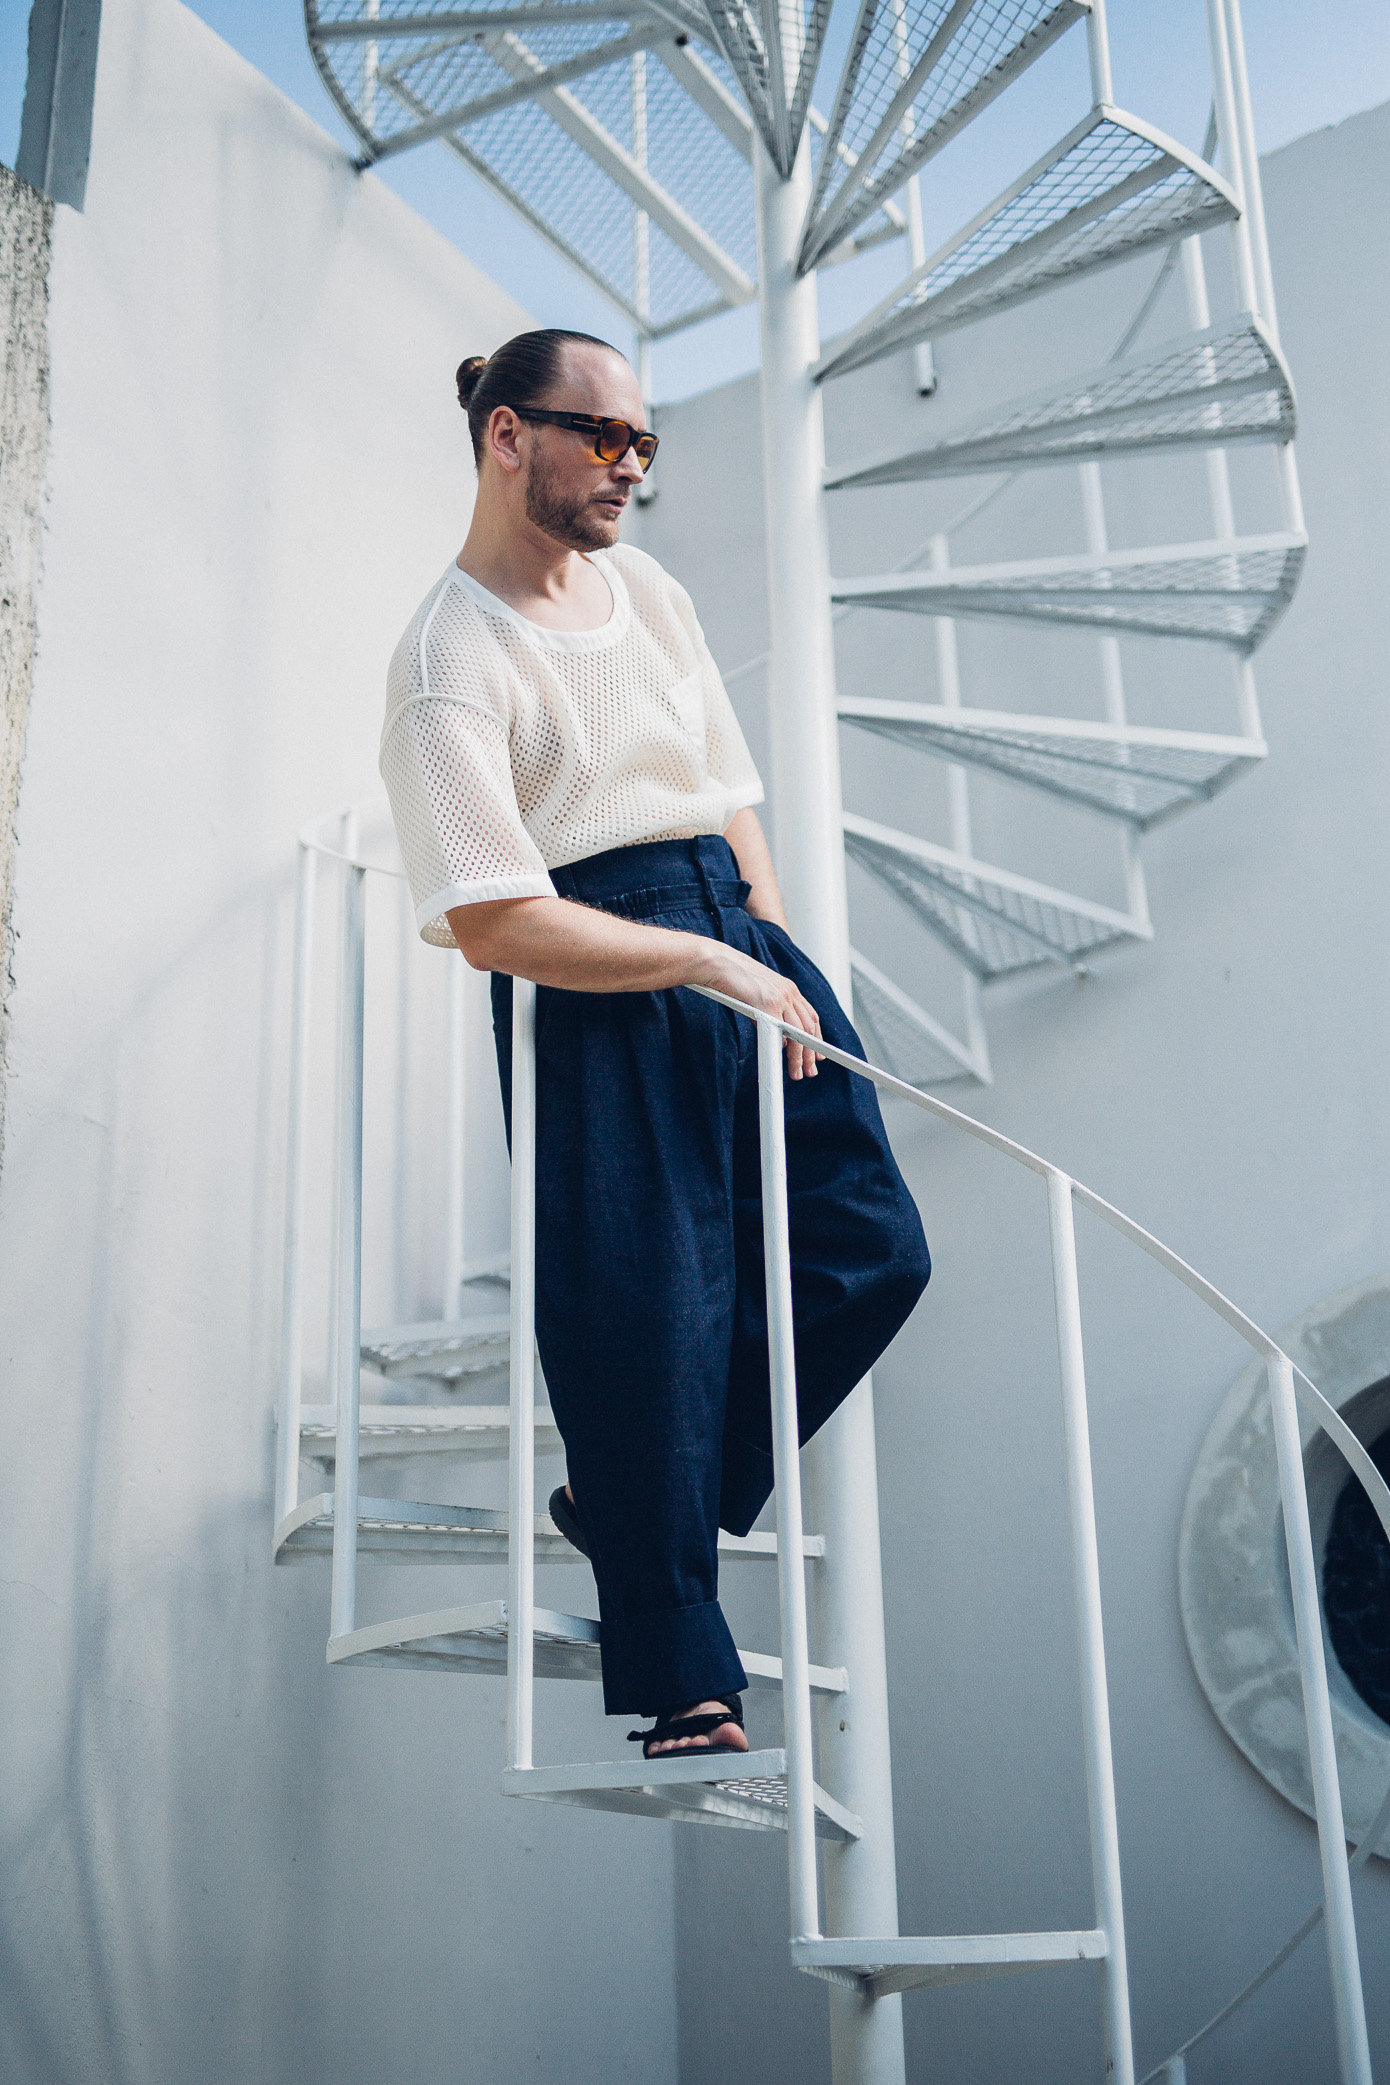 The Diplomat Hotel, Tom Ford, Acne Studios, J.W. Anderson, Teva